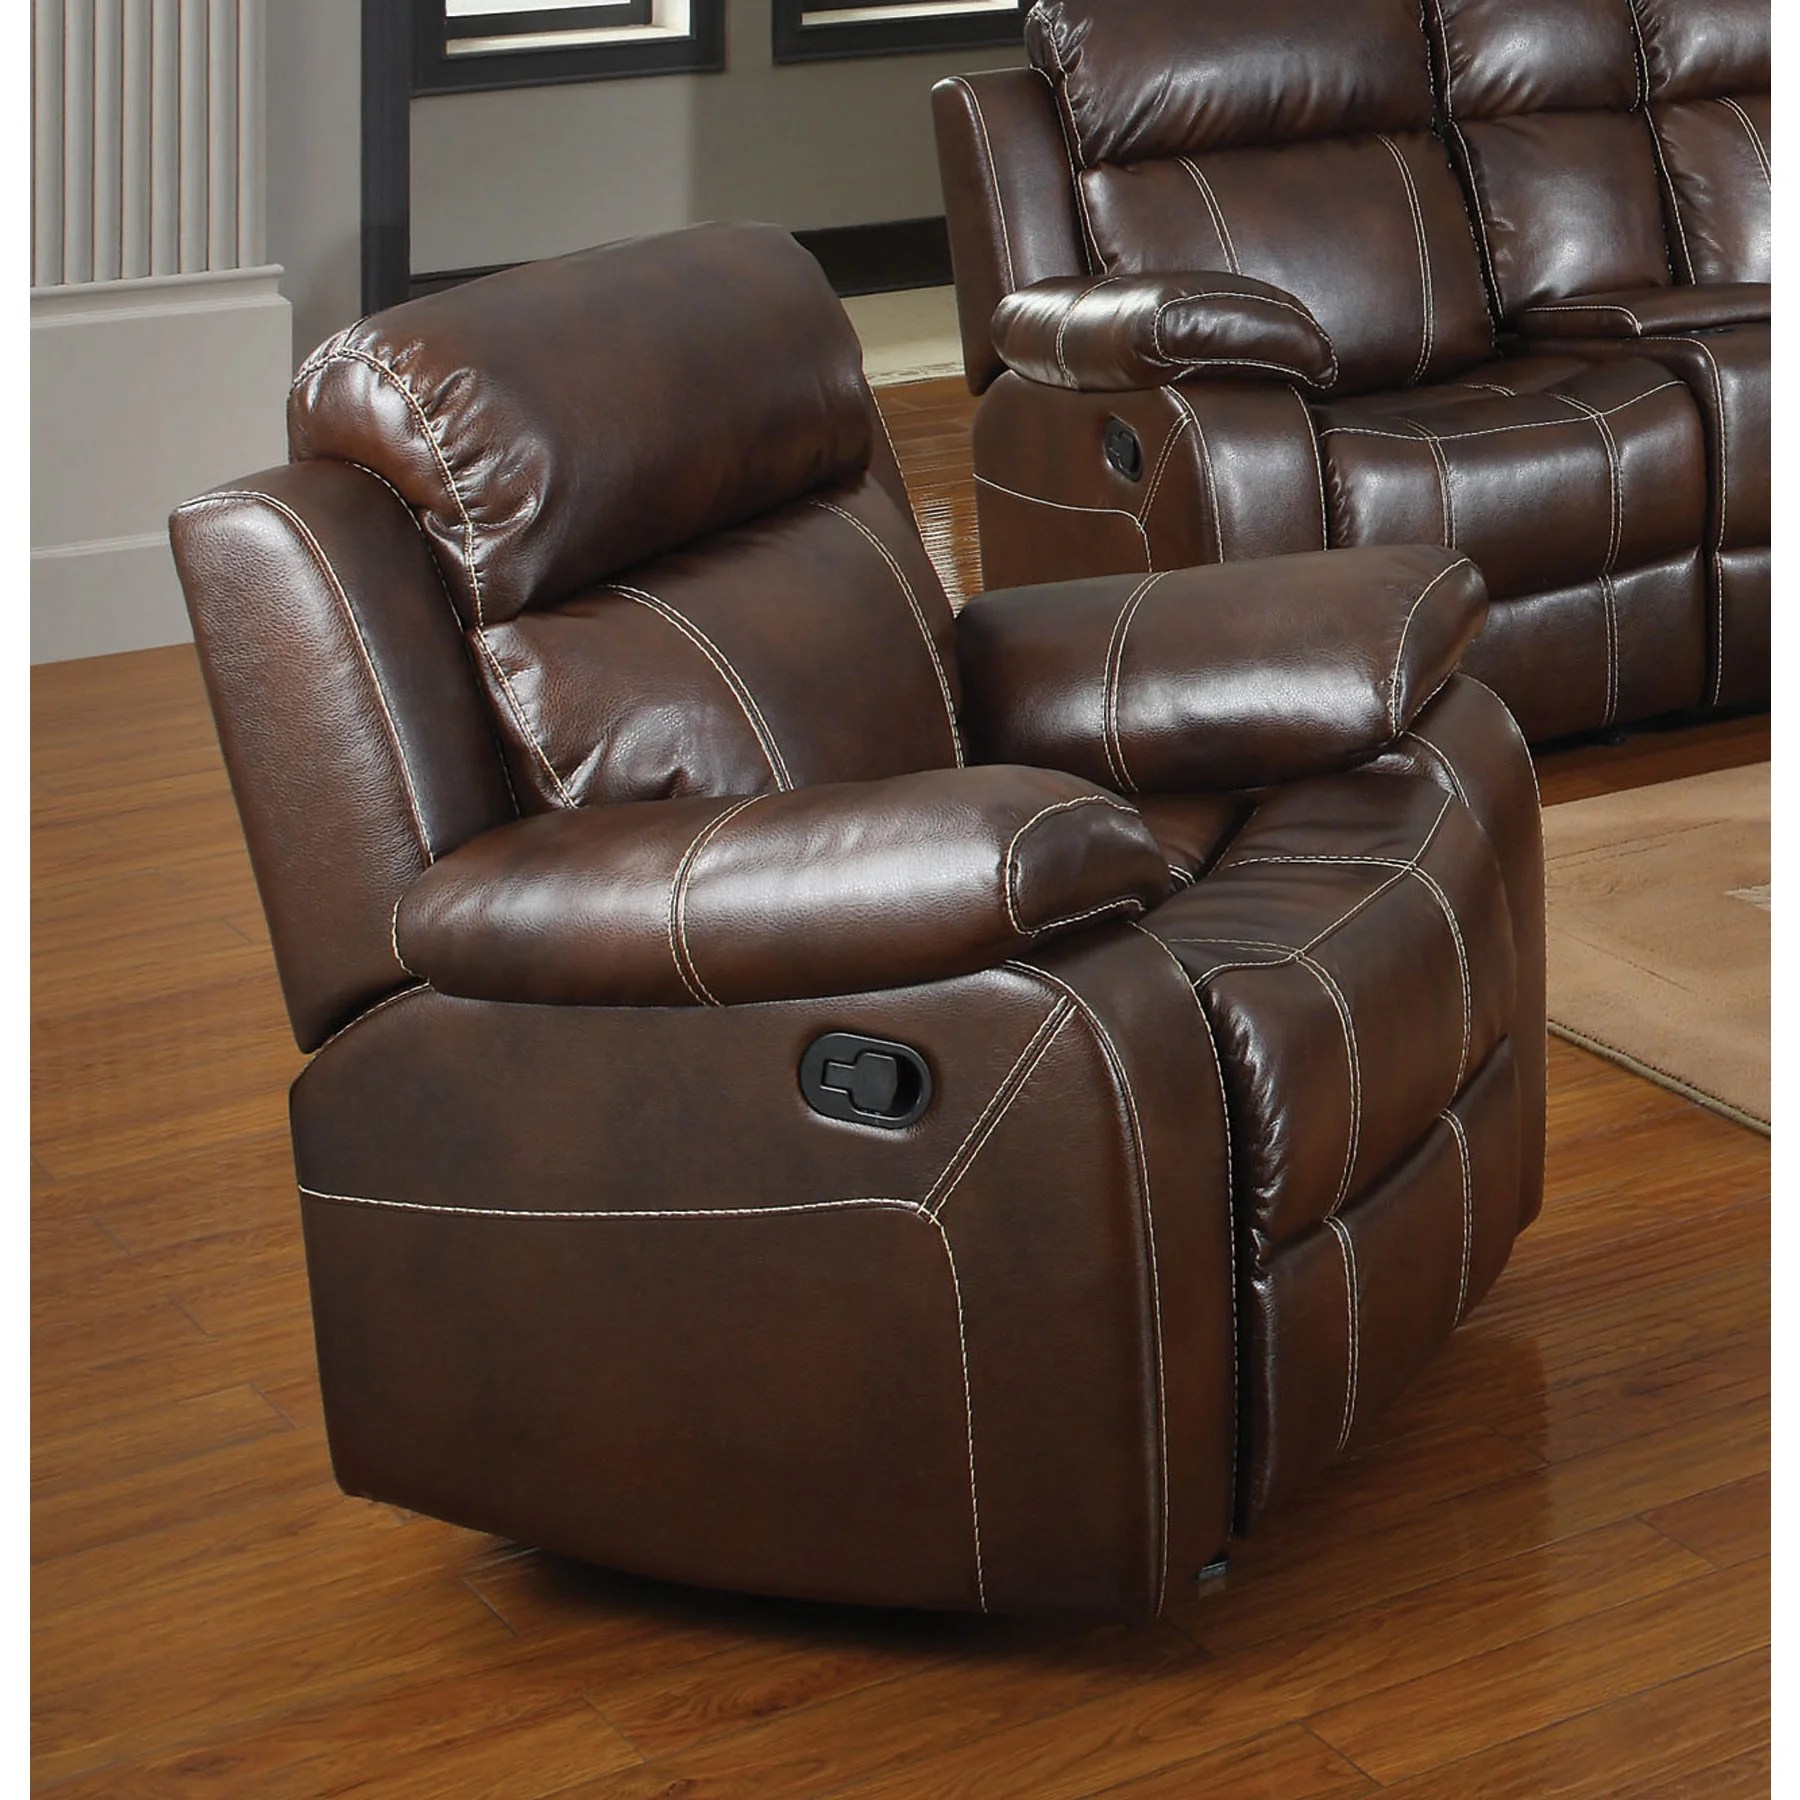 Recliner Pillow Copper Grove Glentress Chestnut Glider Recliner With Pillow Arms